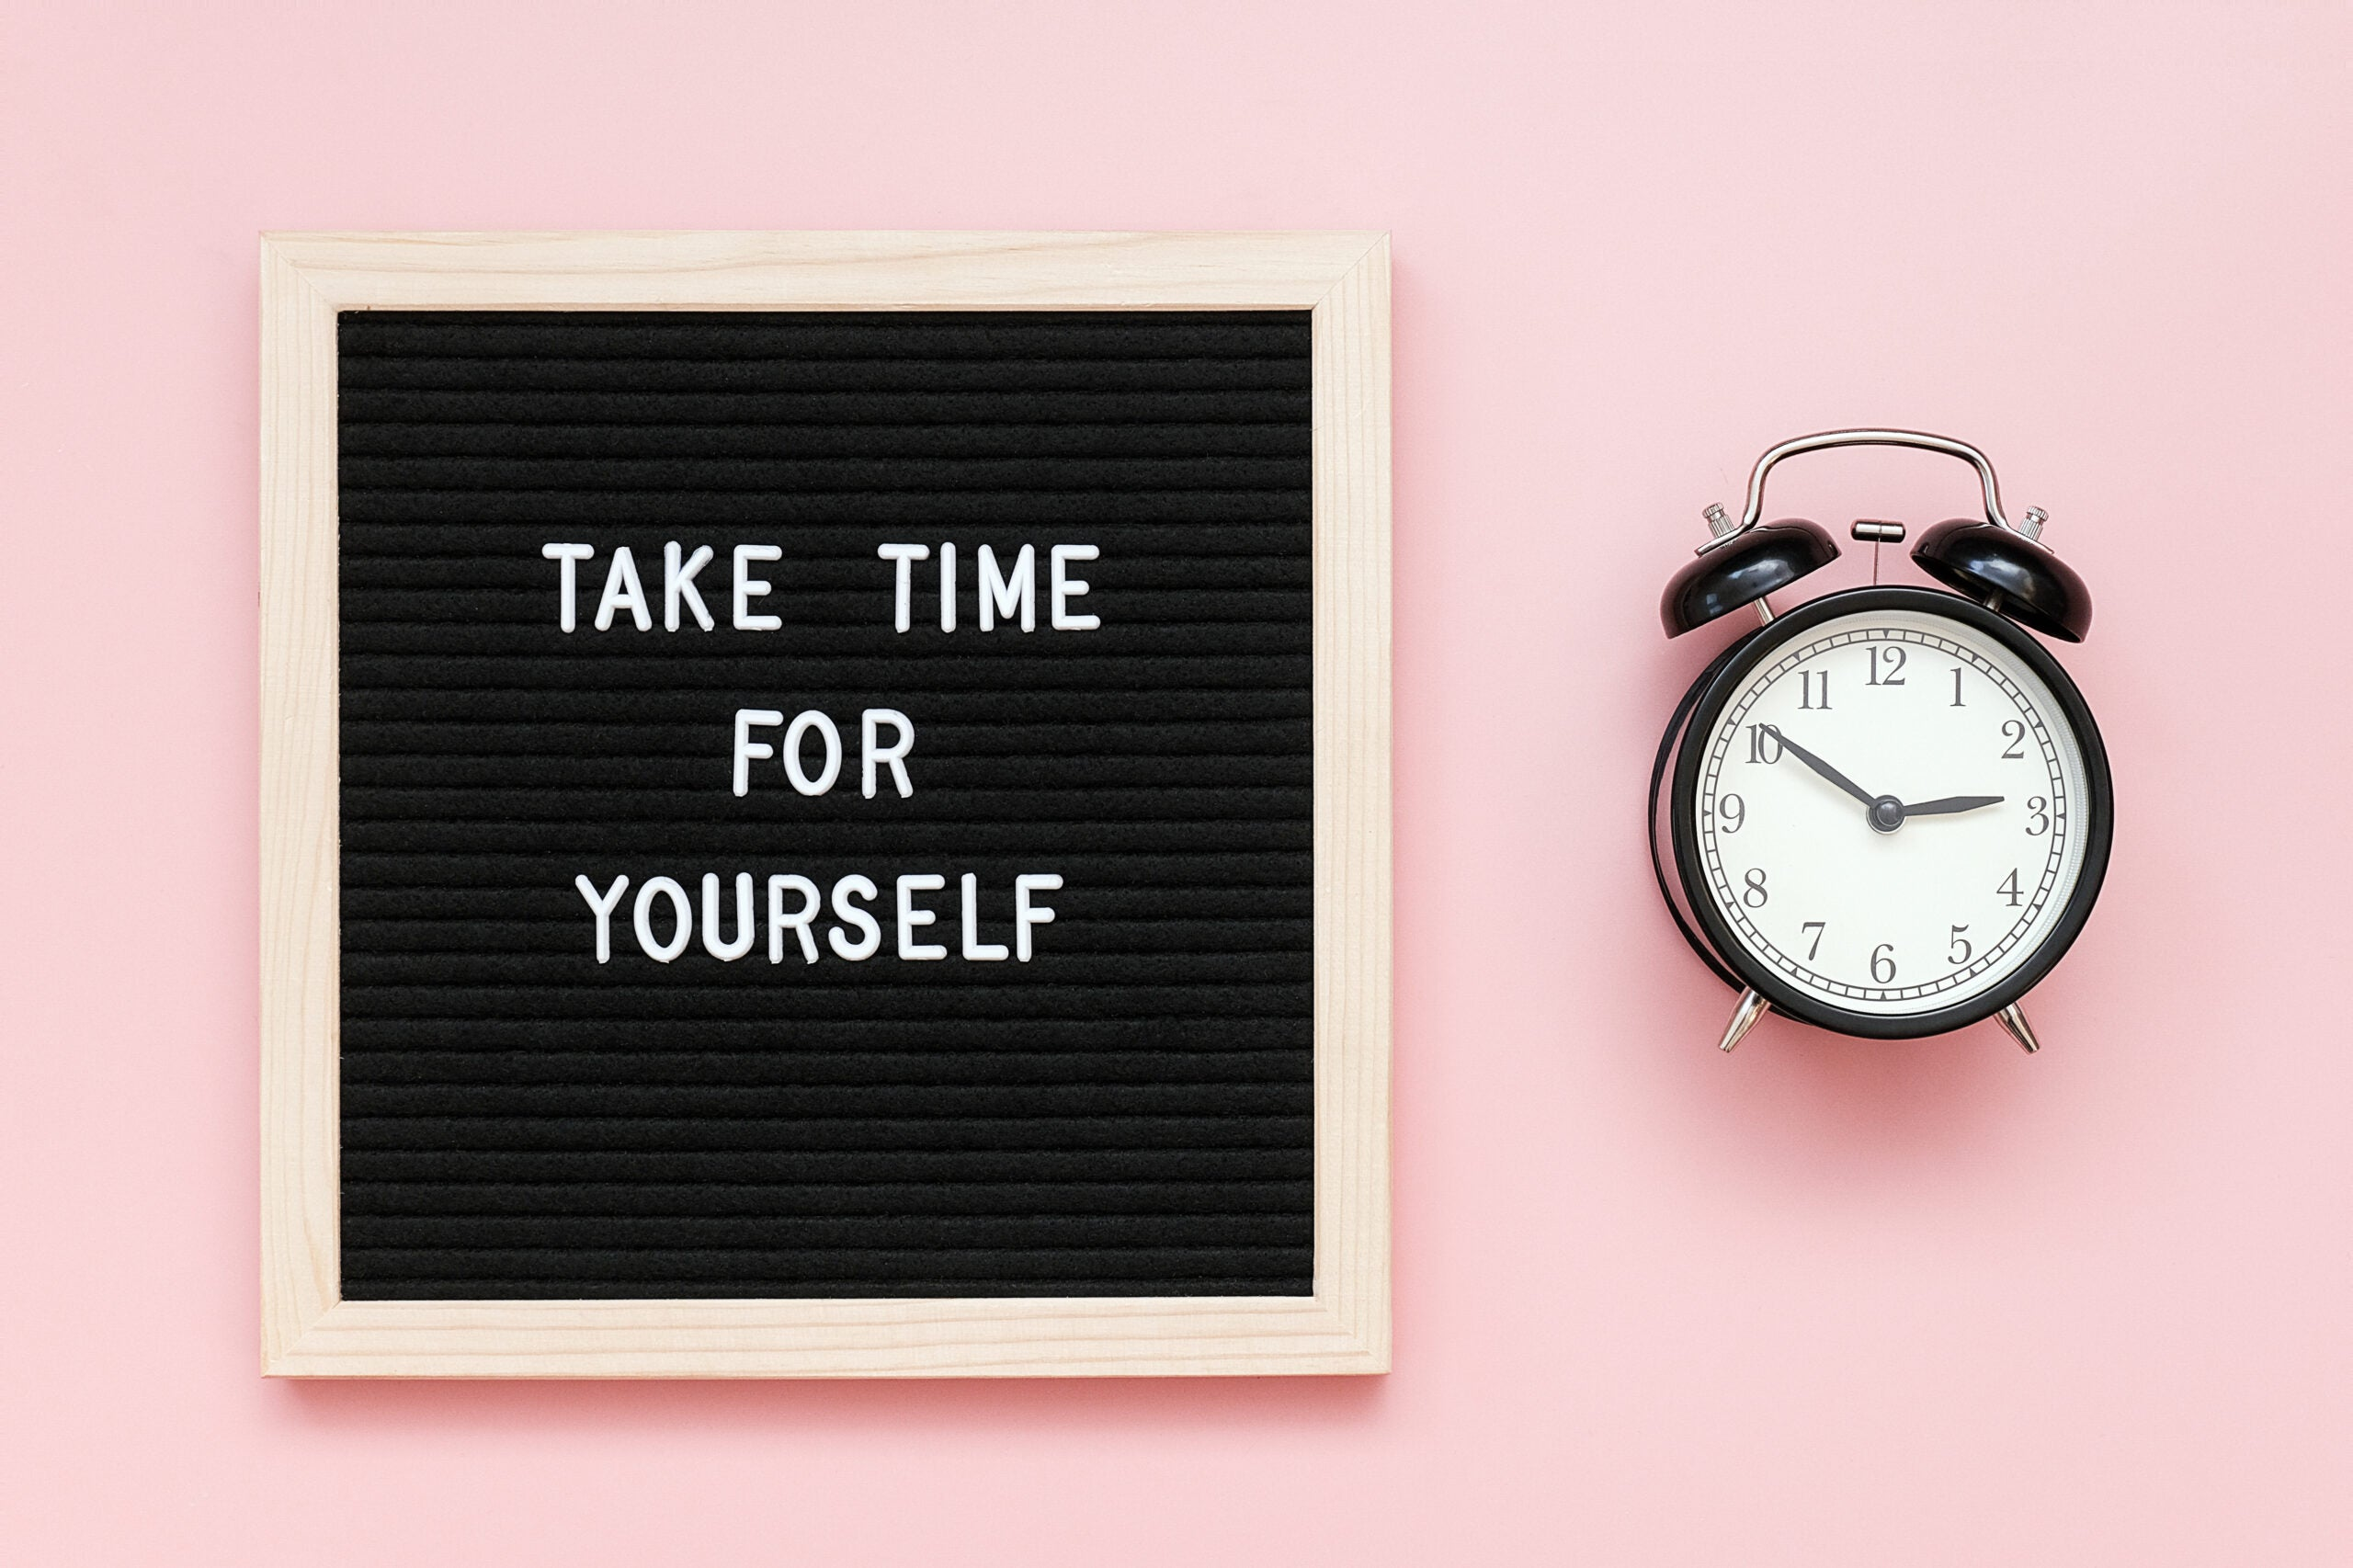 Take time for yourself. Motivational quote on letterboard.